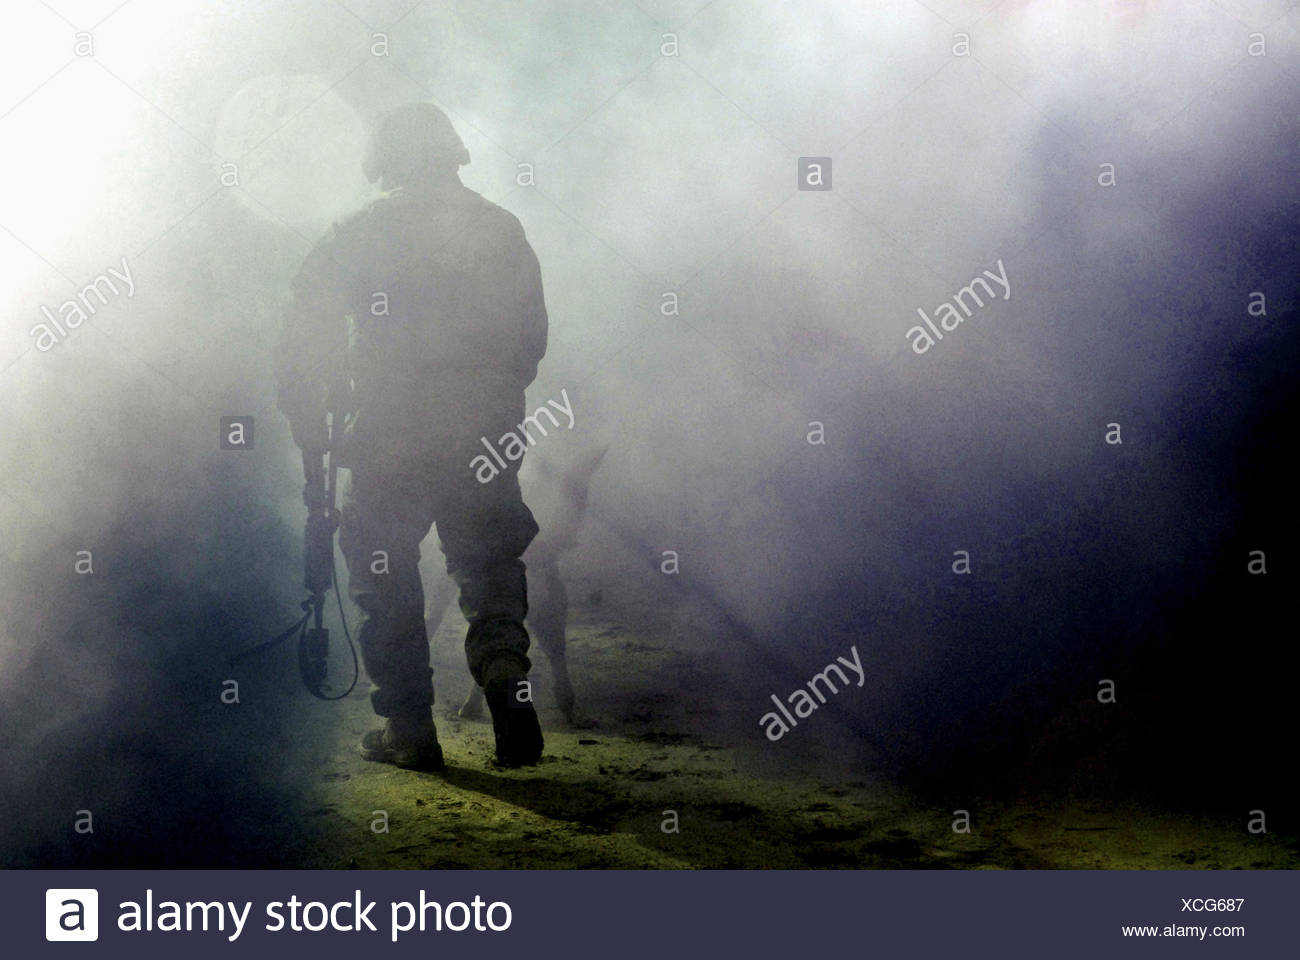 A student practices tactics for military operations in urban terrain training at Naval Air Engineering Station Lakehurst, N.J. - Stock Image